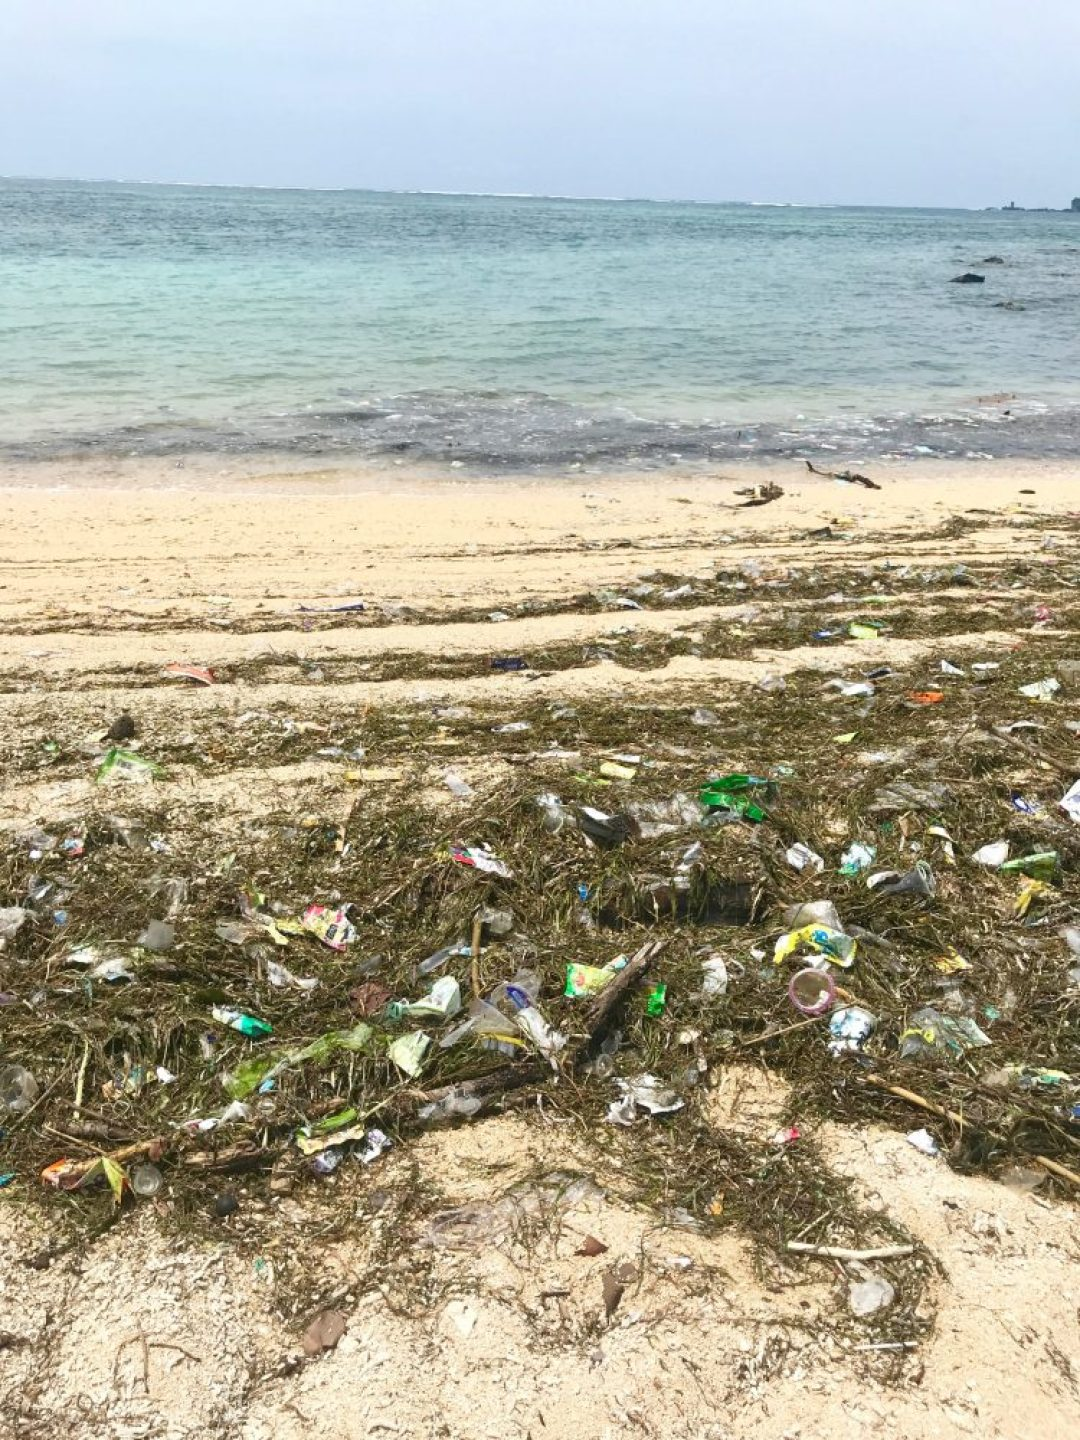 Garbage on the beach is a common theme throughout Indonesia.